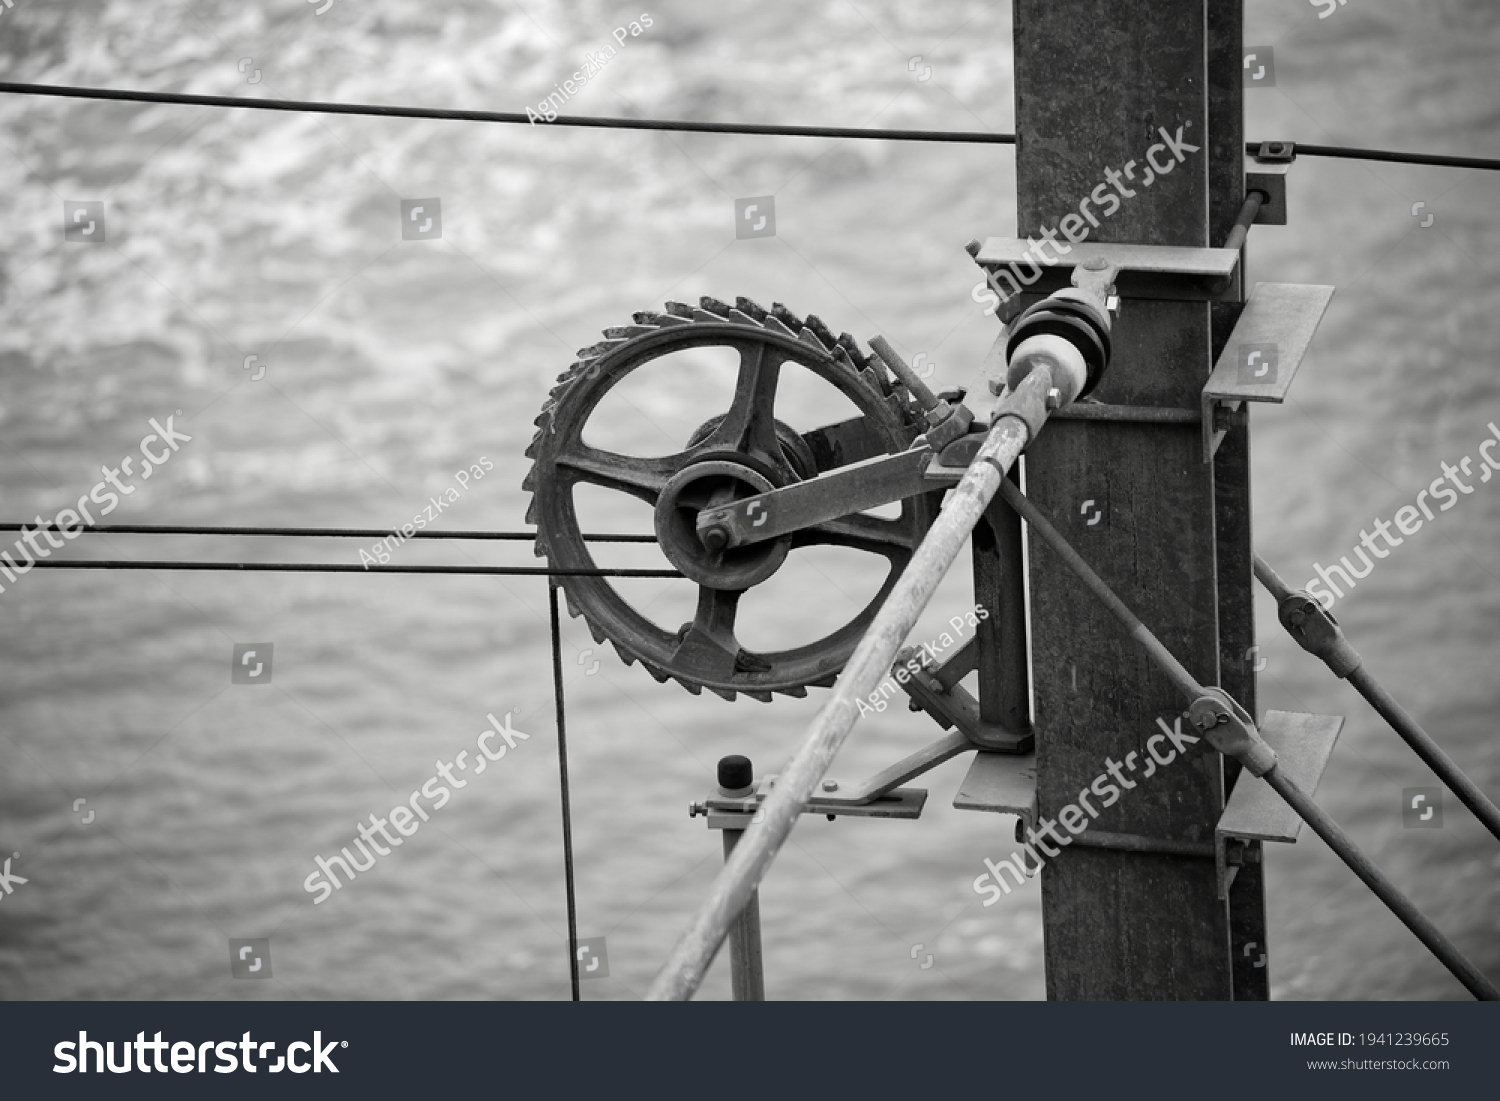 Closeup view of a gear keeping tension of electric wires in the railway electrification system. Irish railroad infrastructure with the Irish Sea in the background. Black and white industrial photo.